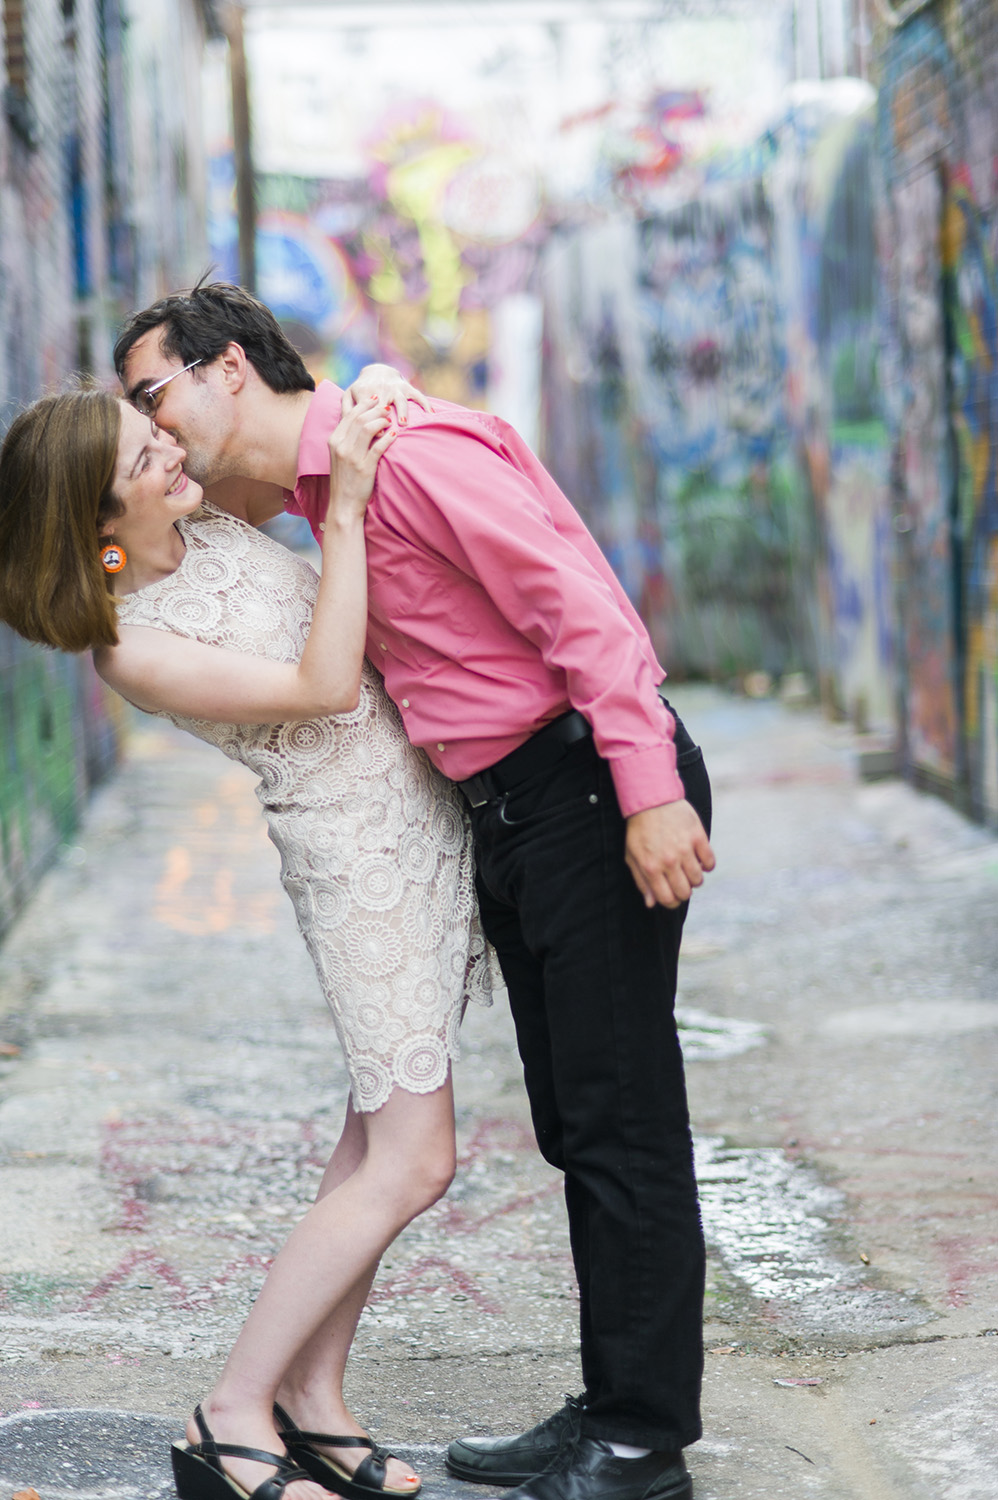 baltimore-graffiti-alley-engagement-photography-01.jpg